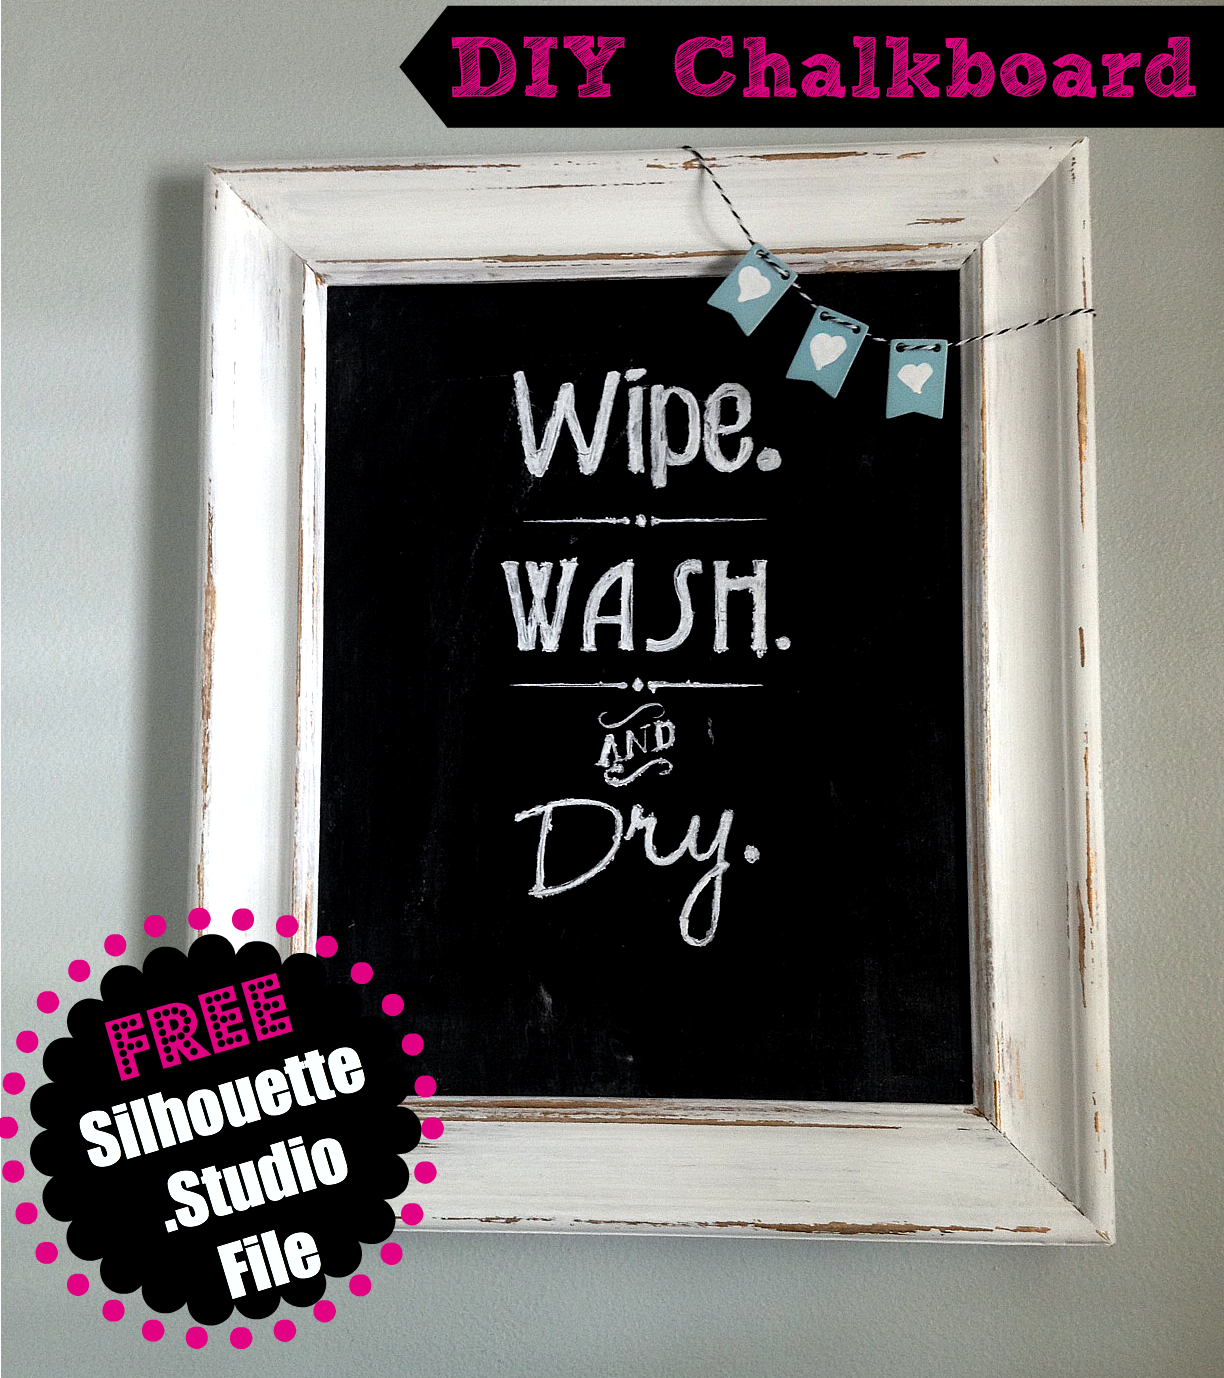 Bathroom Quotes Wall Art Or Chalkboard Free Silhouette Studio File